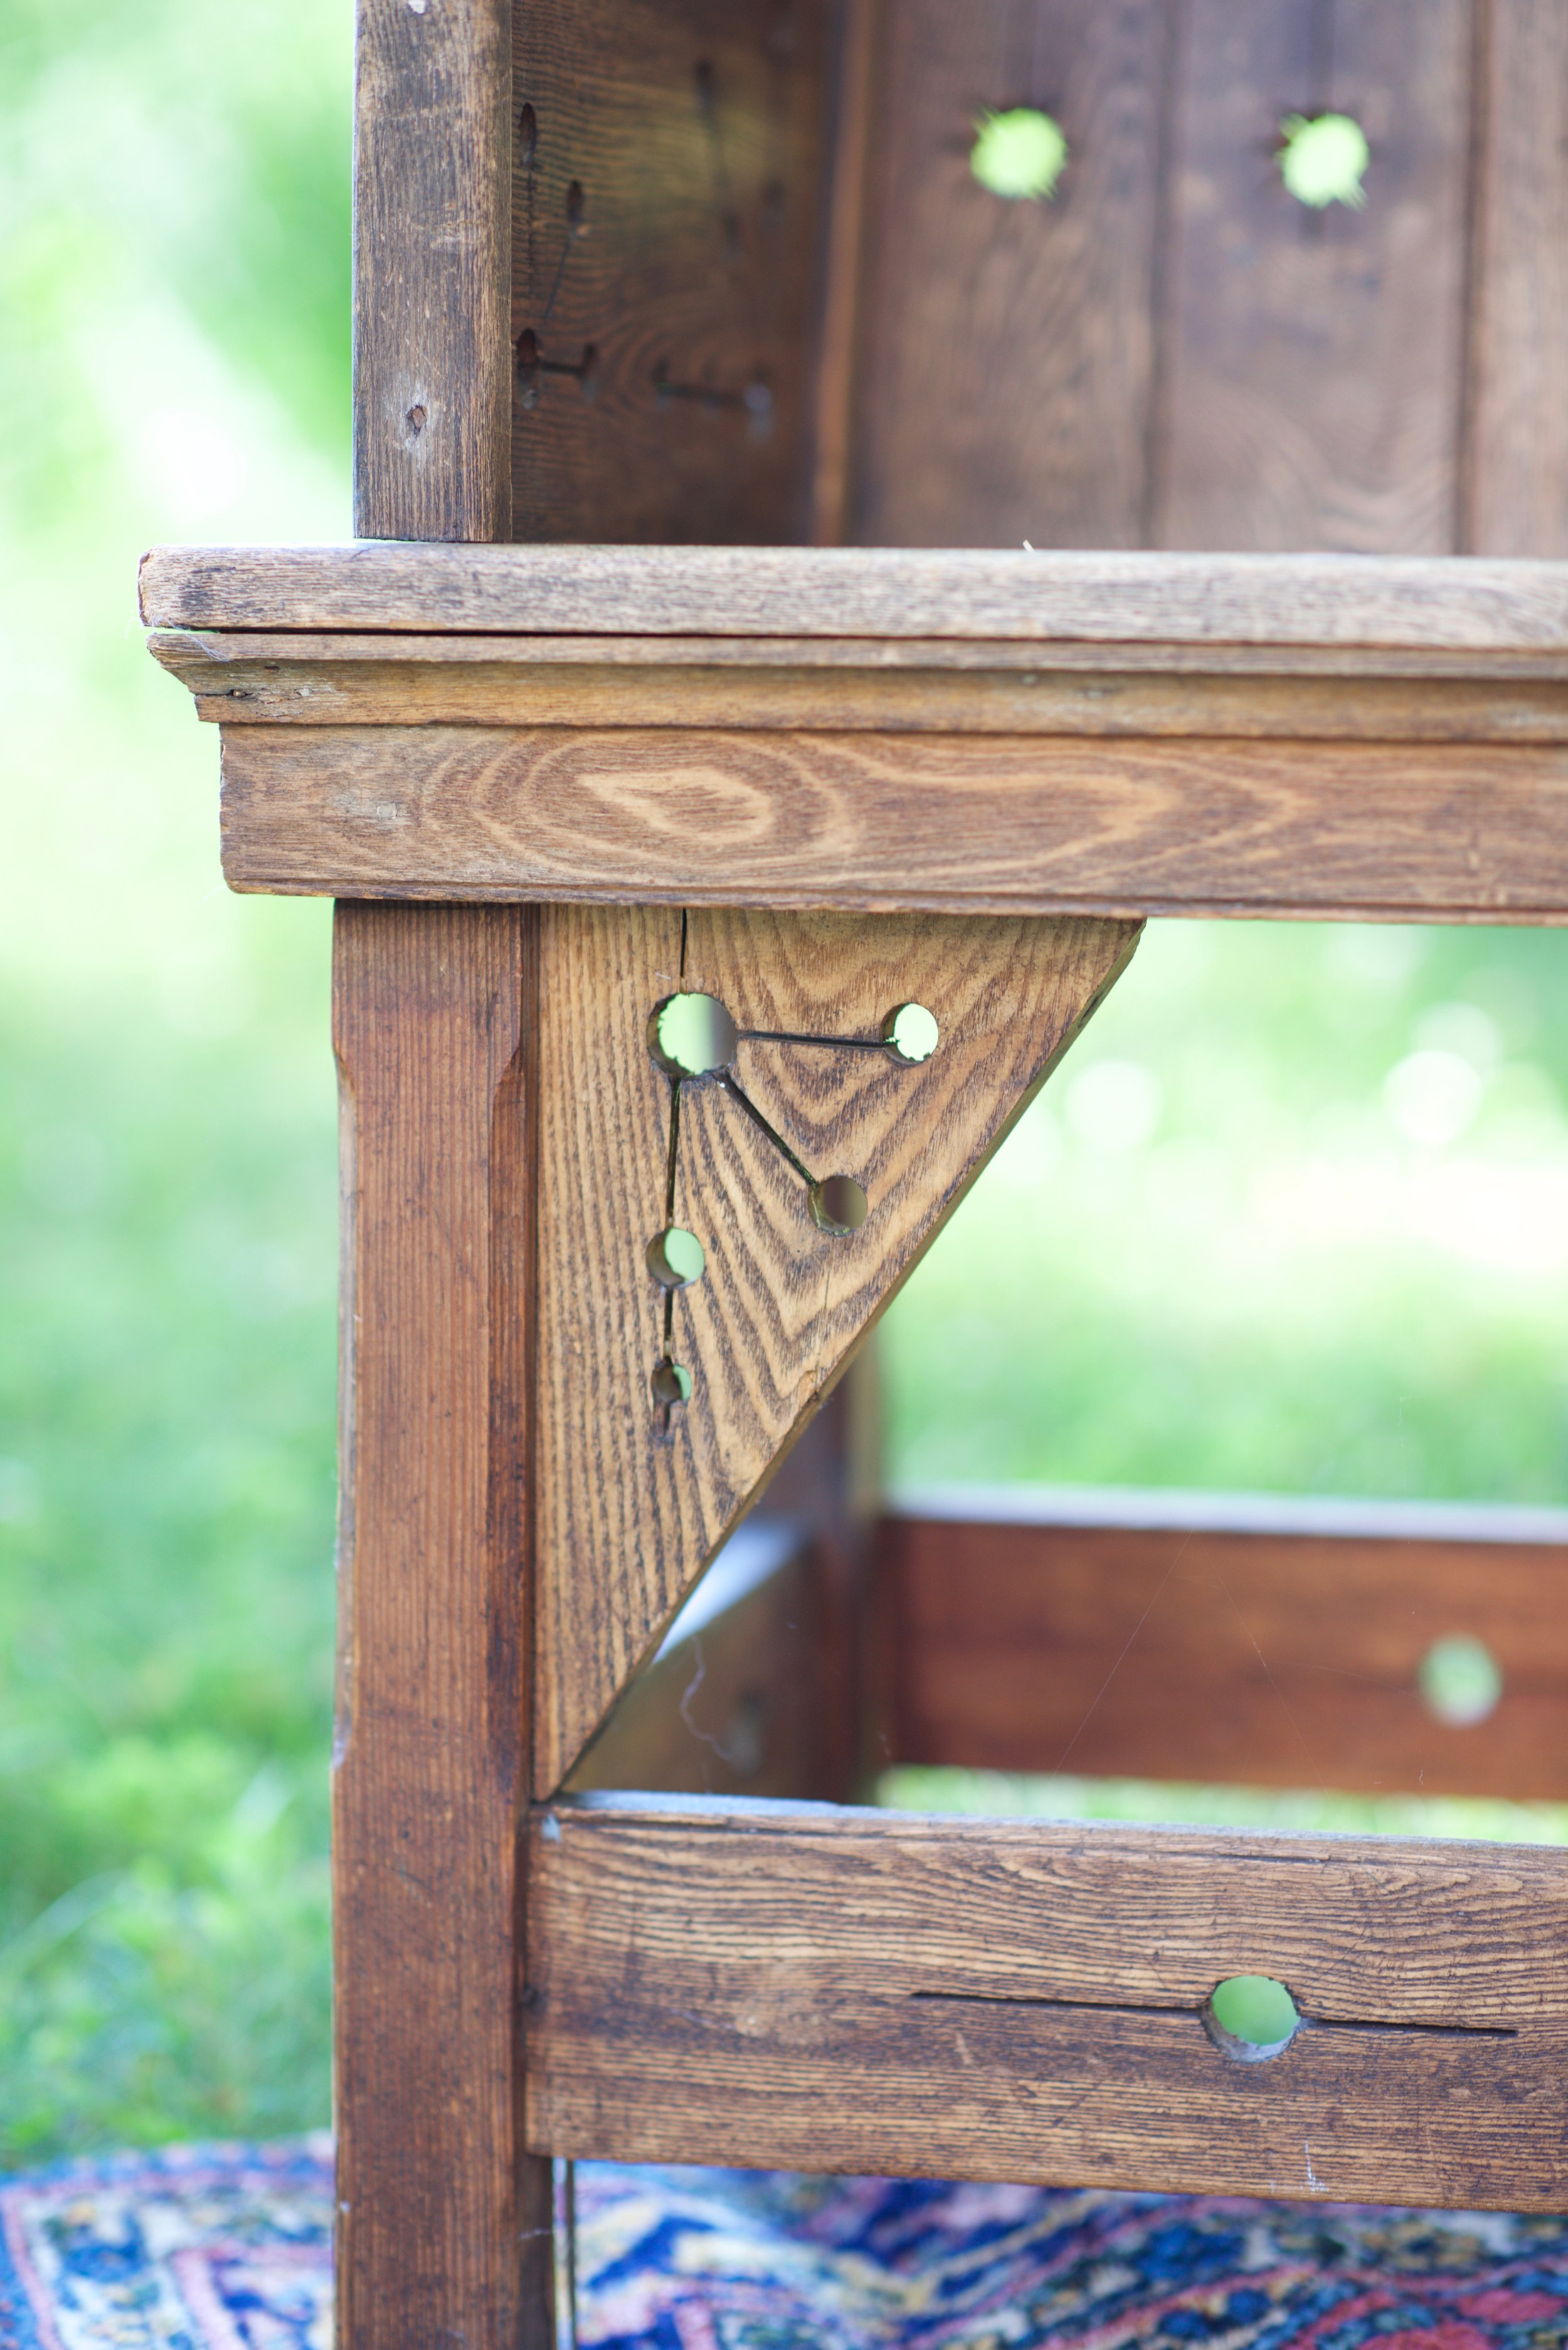 - No matter how large or small your project may be, Interiors with Provenance can bring together past, present, and future with meticulous attention to detail and an intuitive approach to decorating. If you need us to recommend a paint color, redesign a room, or work with you to design your whole home interior, please contact us to schedule a consultation.